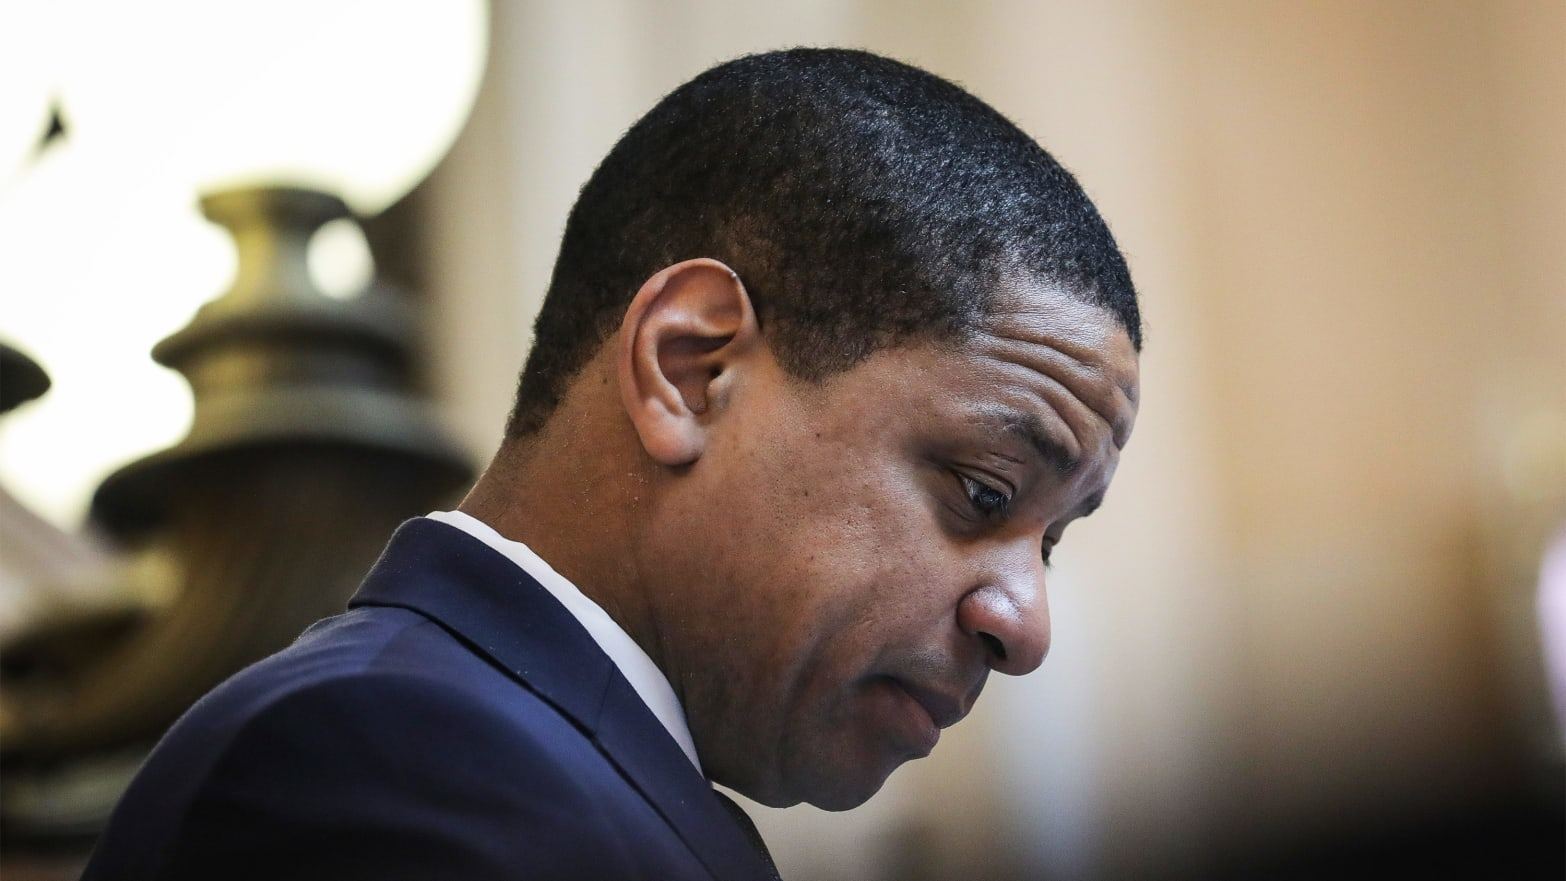 Justin Fairfax, Embattled Virginia Lt. Governor, Releases Polygraph Test Results to Counter Two Sexual Assault Allegations